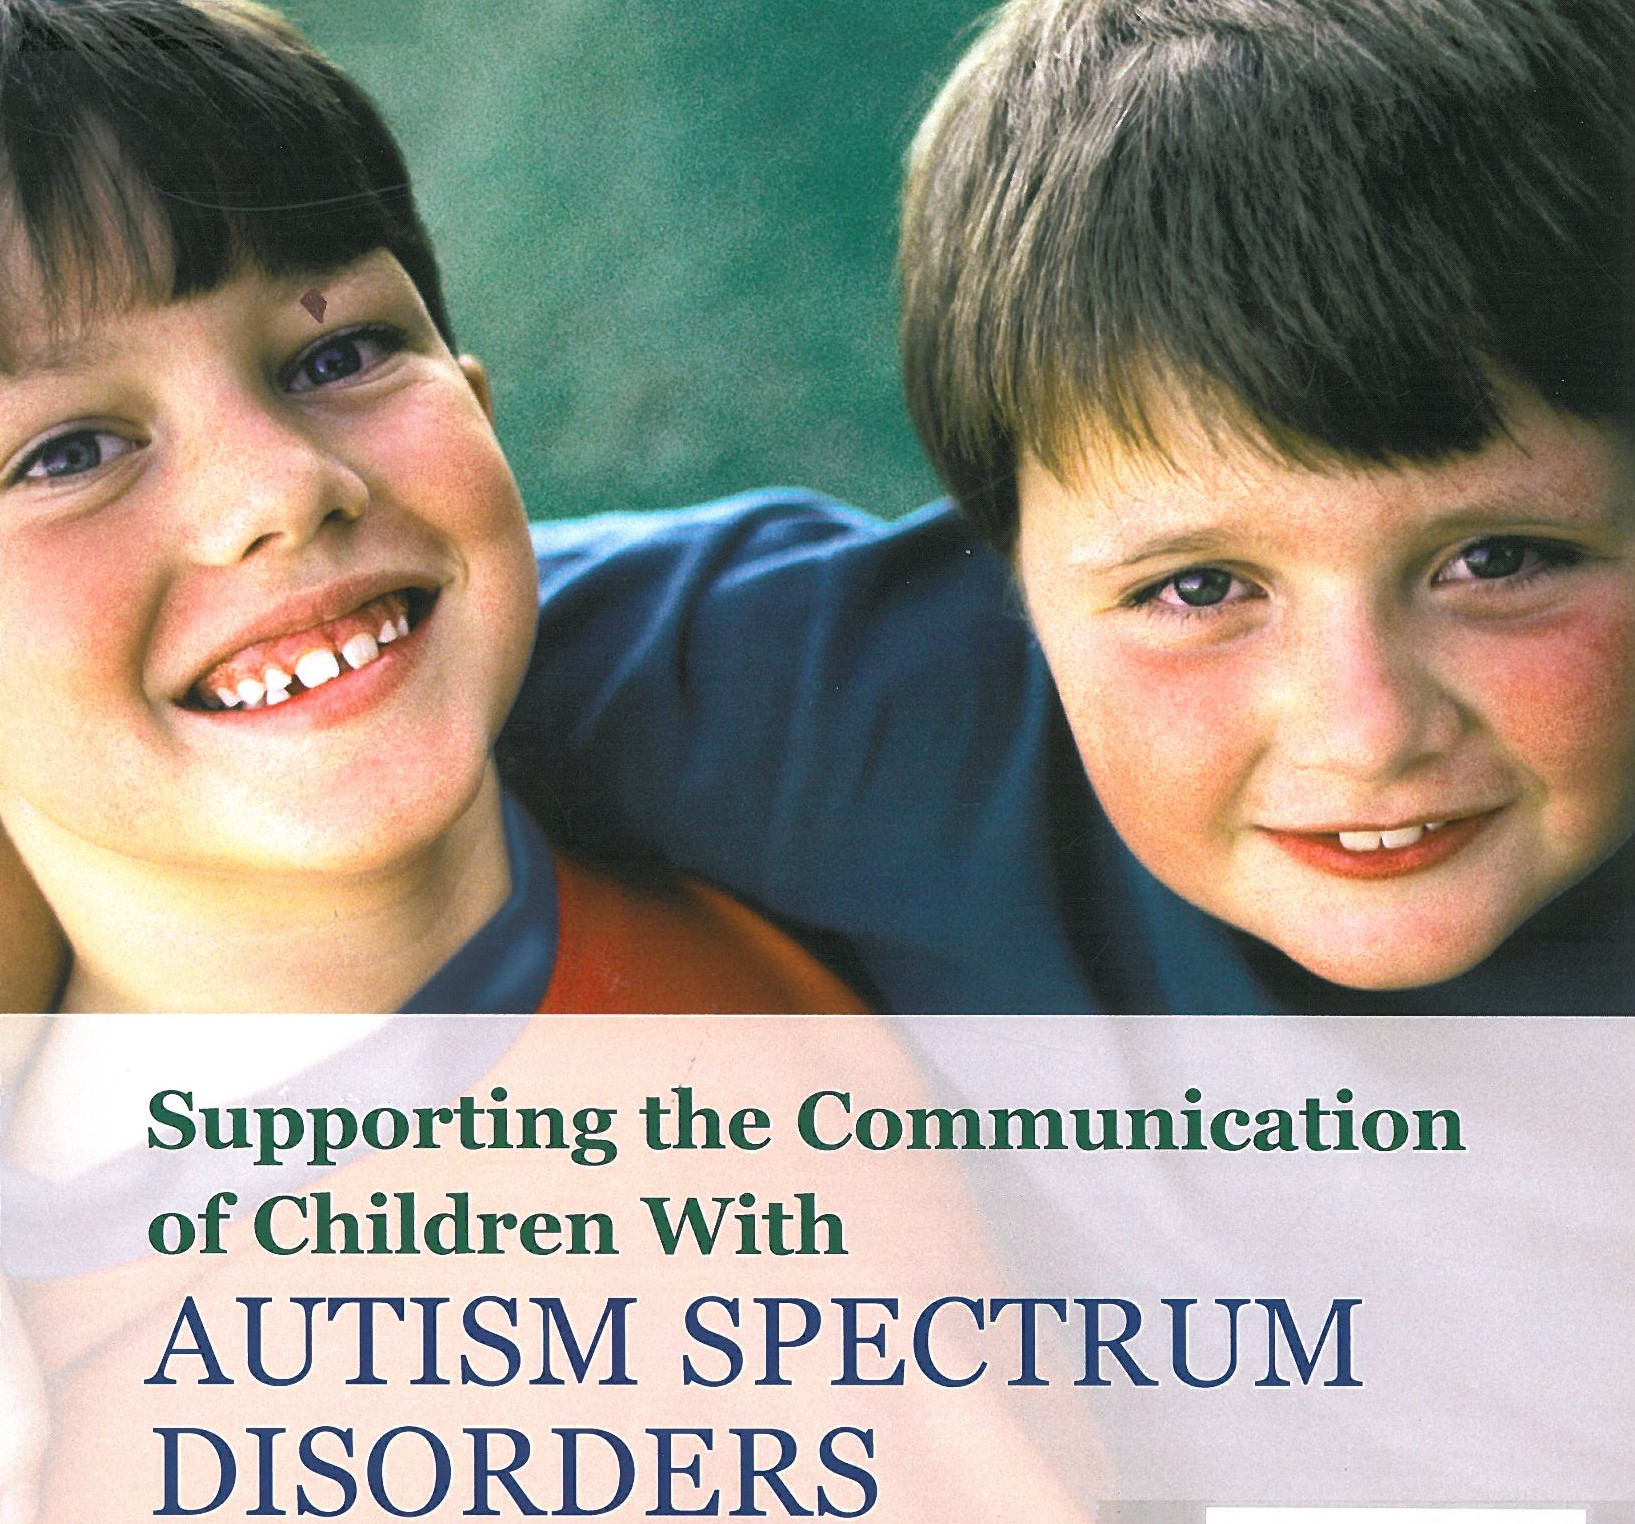 Supporting the communication of children with autism spectrum disorders